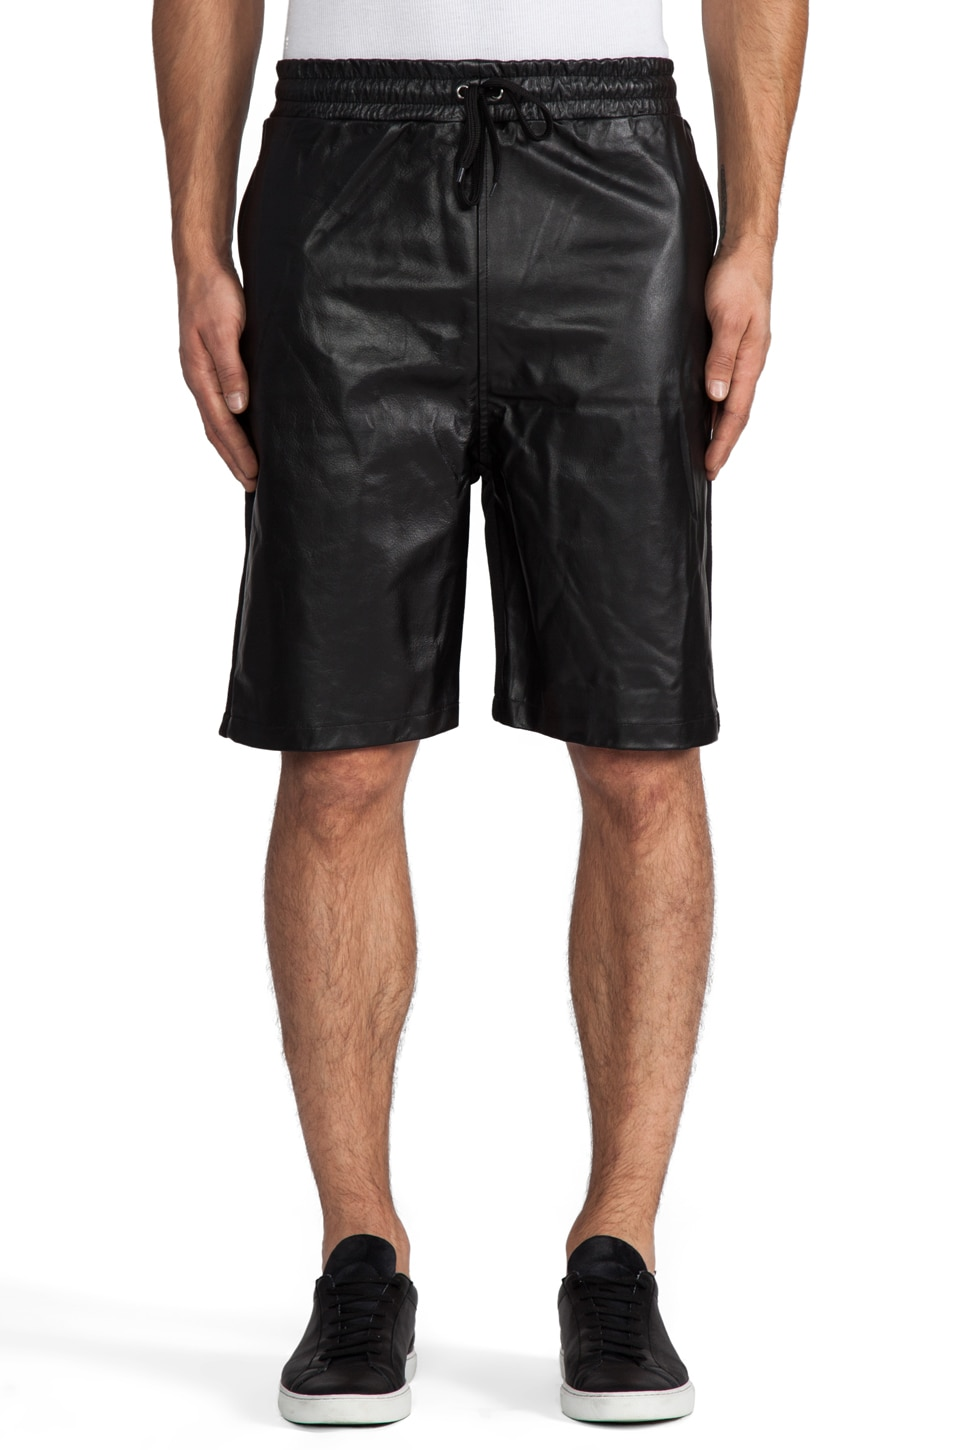 Iridium Leather and Cotton Shorts in Black